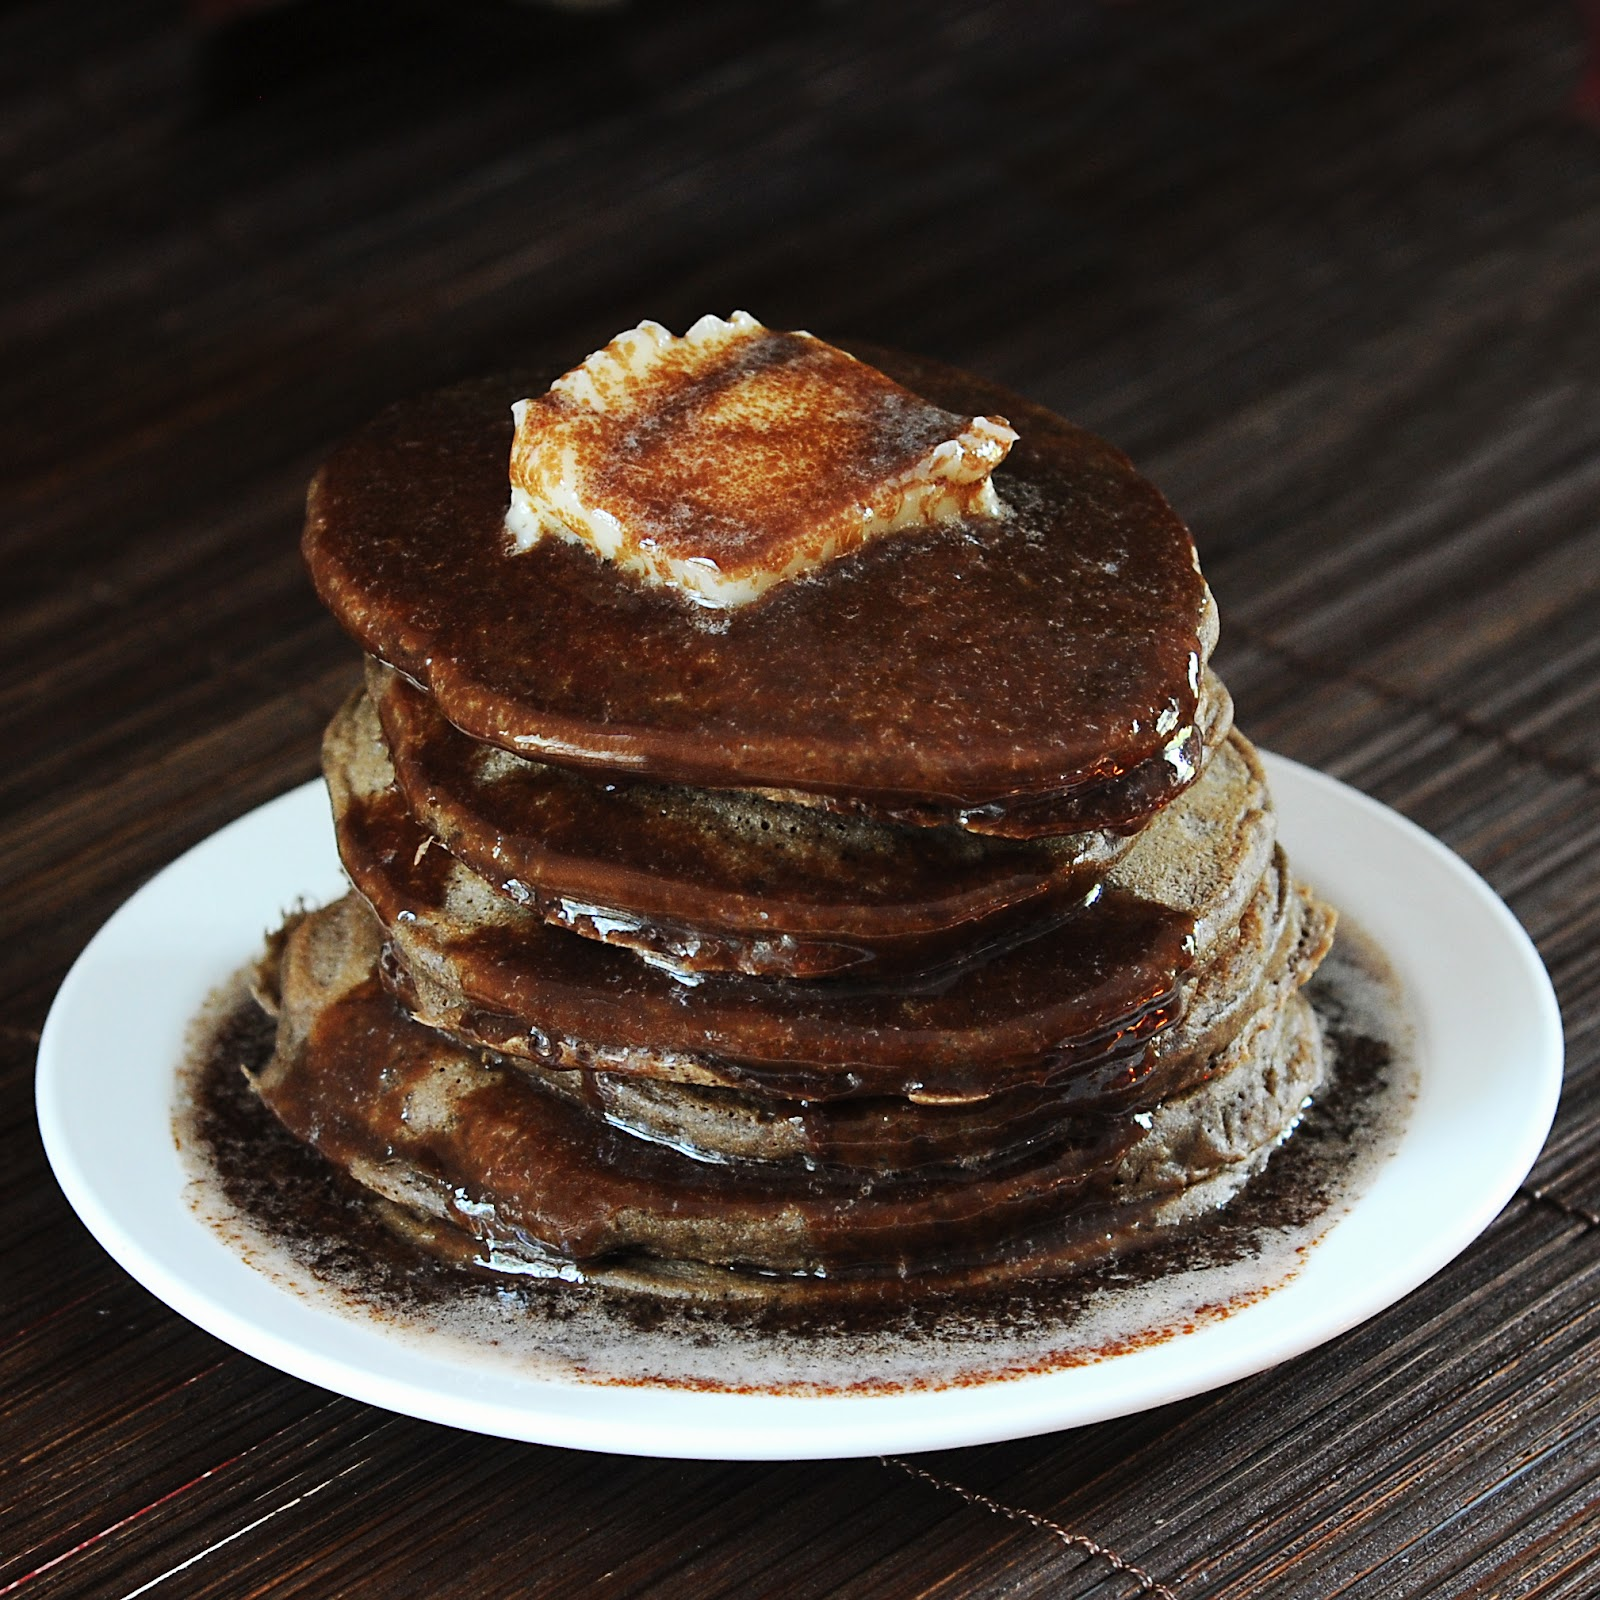 poets and pancakes essay Essay genre essays,  i'm from bugs bunny shaped pancakes on sunday mornings with a glass of ice-cold milk  where i'm from.